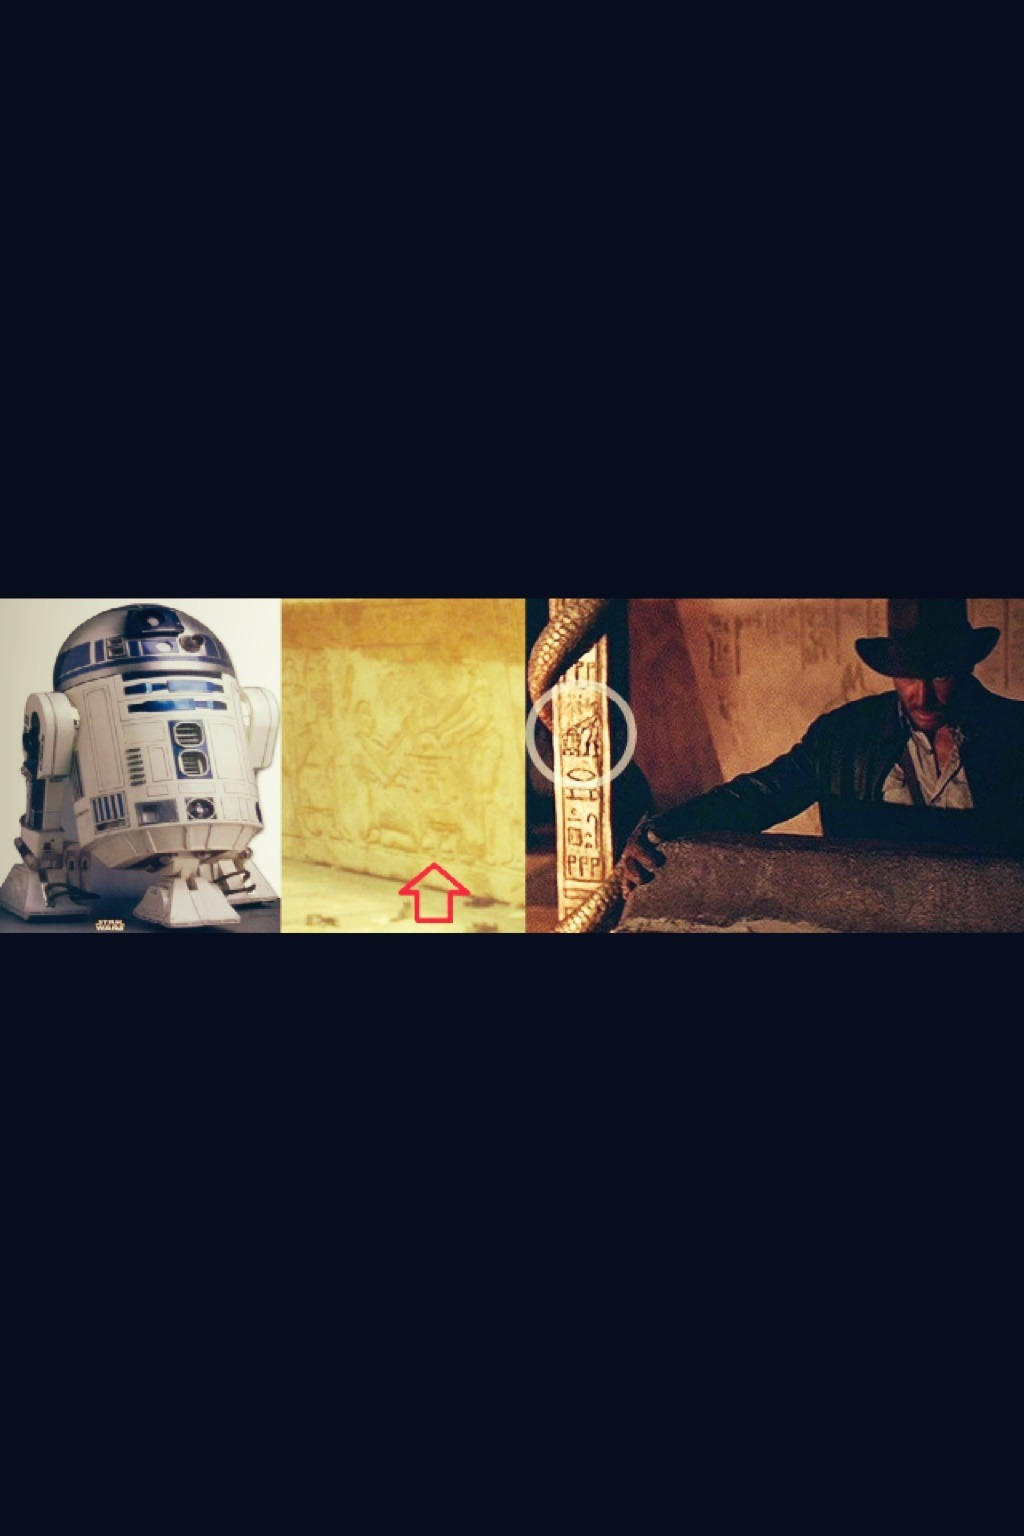 Look! it's a Storycube   portkey. (Via Amanda B)- R2D2 & C3P0 were in Raiders - at Colcord Pond